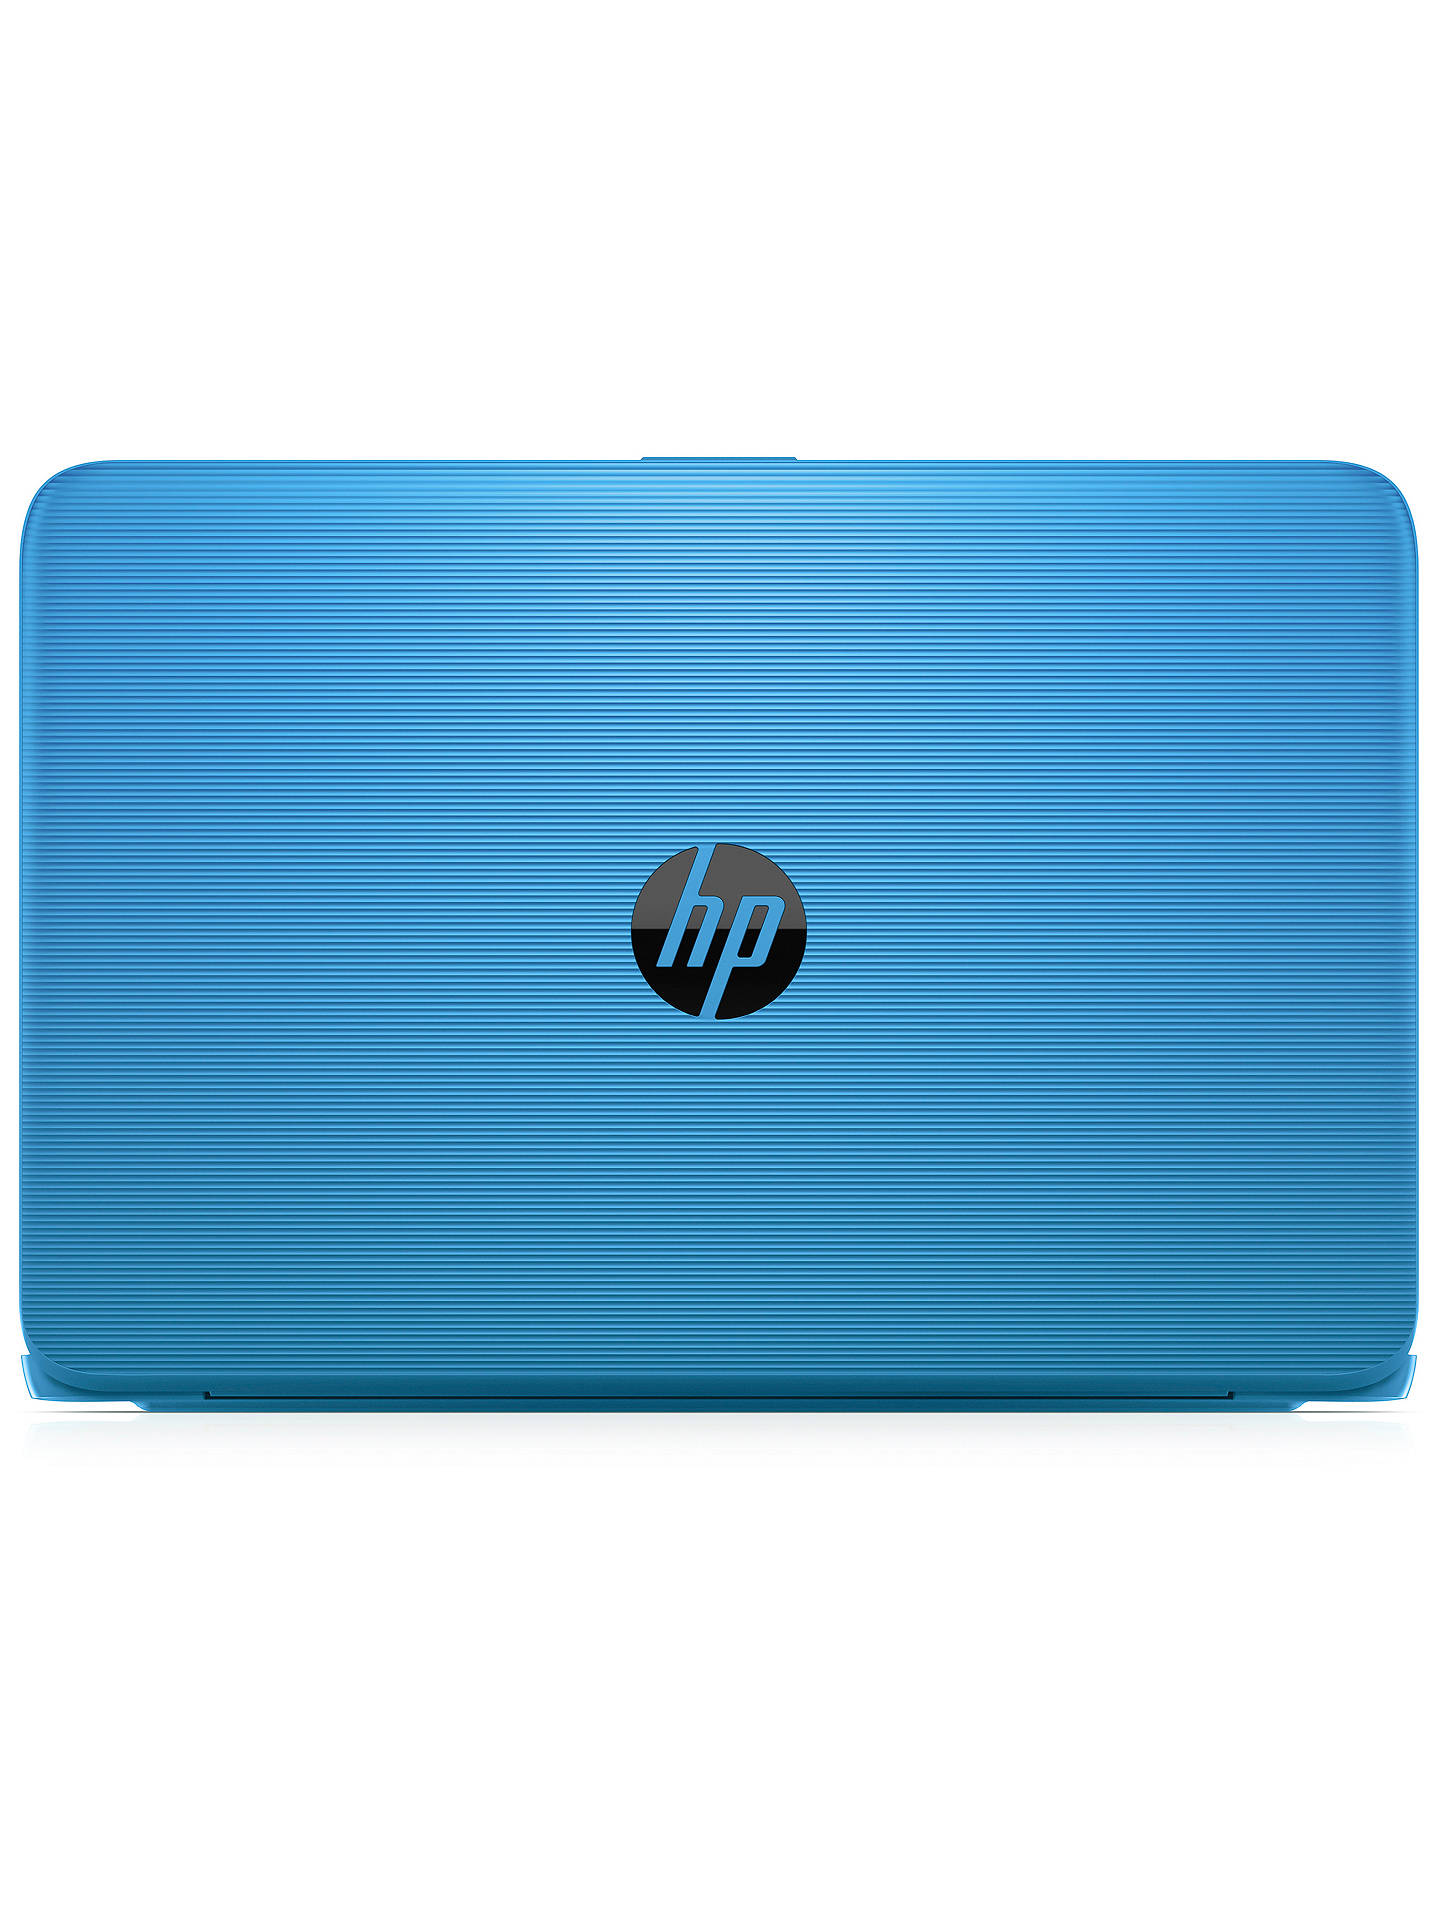 hp stream laptop locked out